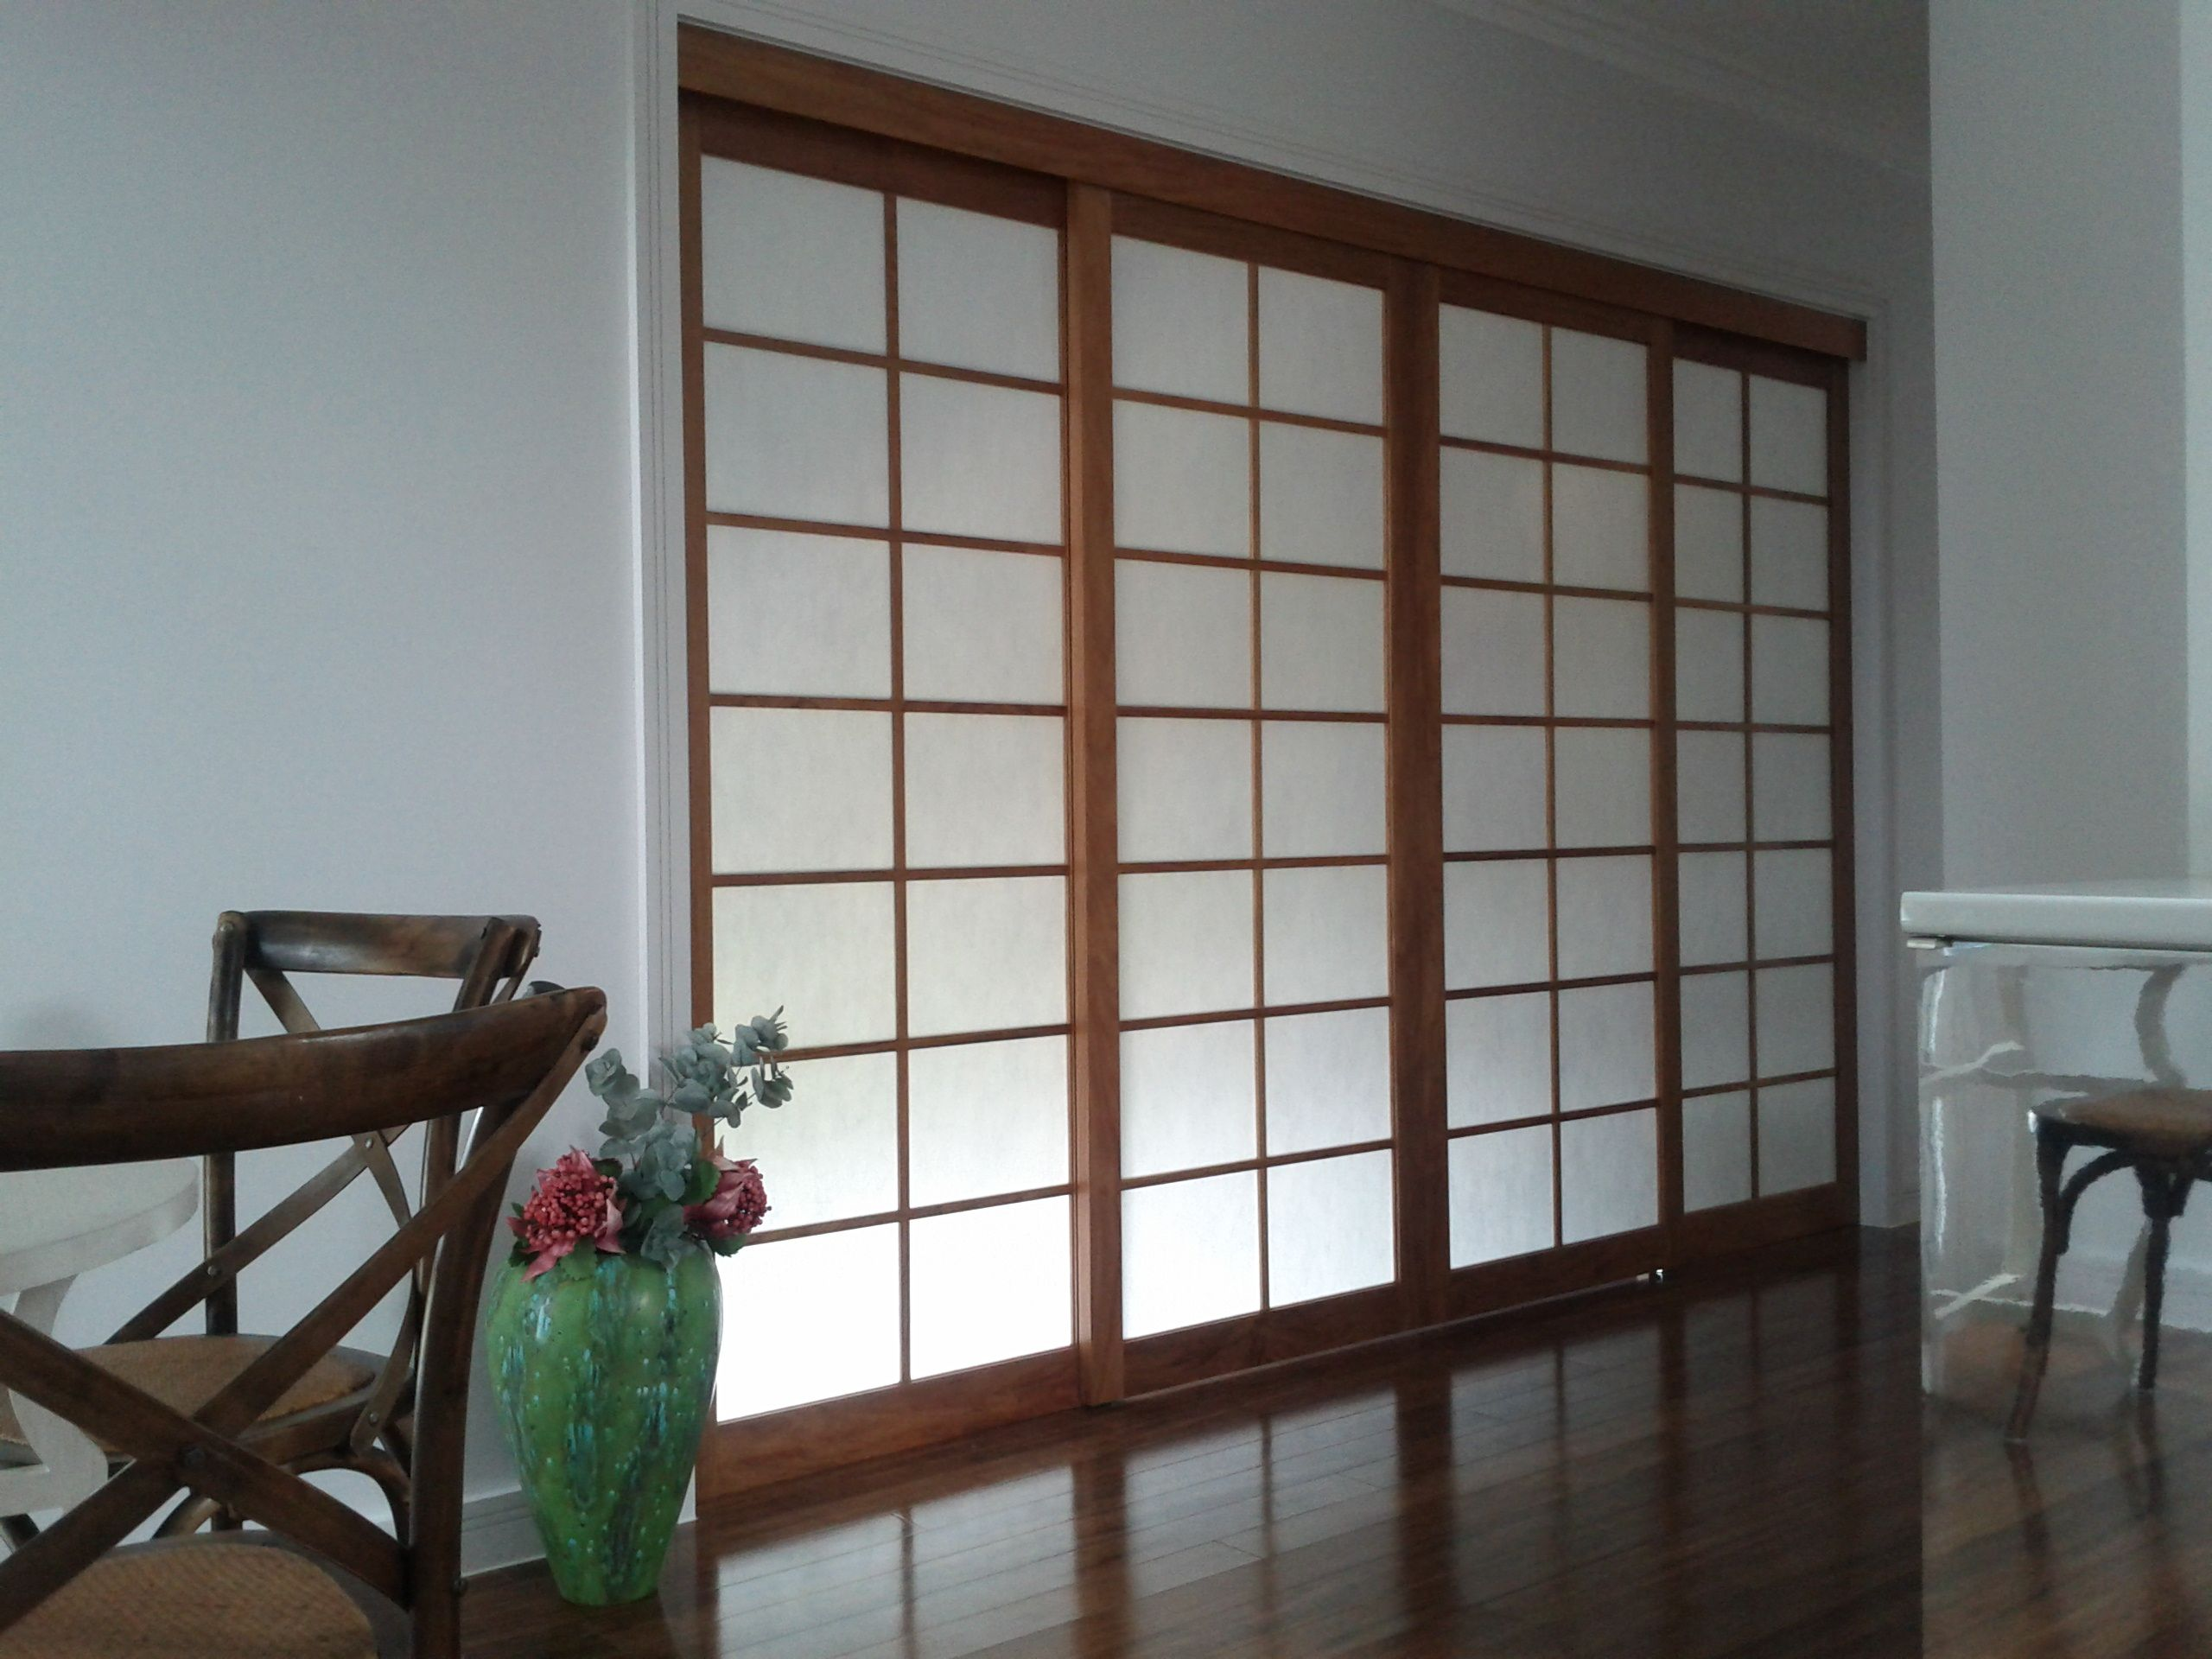 Shoji Sliding Panels Blinds And Doors Available At Status Plus